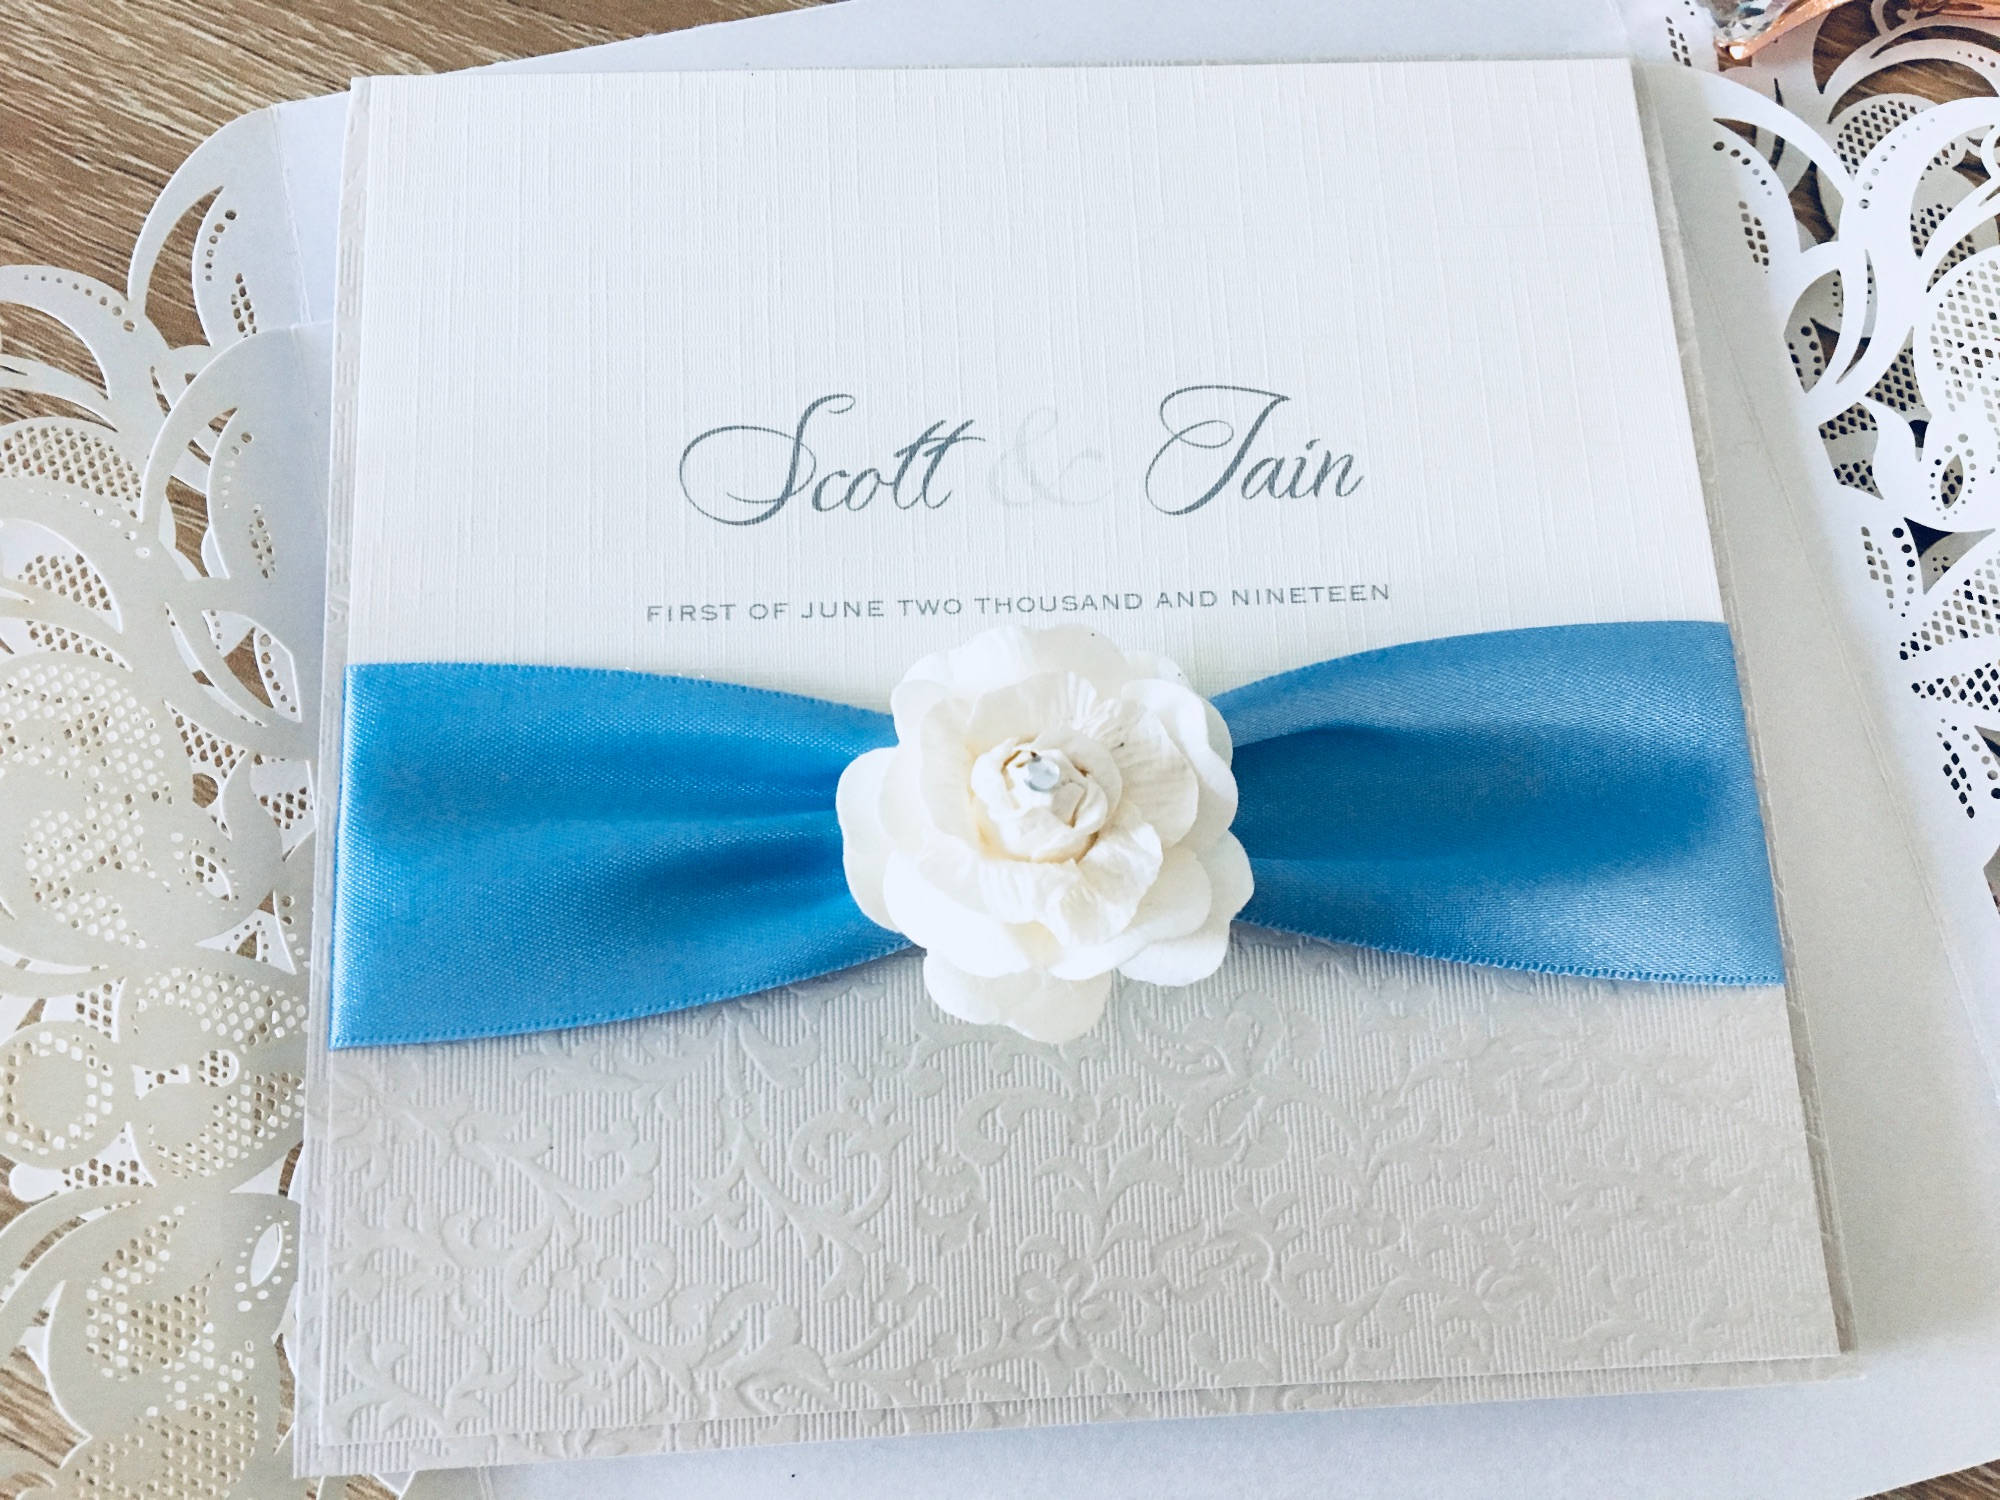 Rose boxed wedding invitation with pale blue ribbon and ivory rose